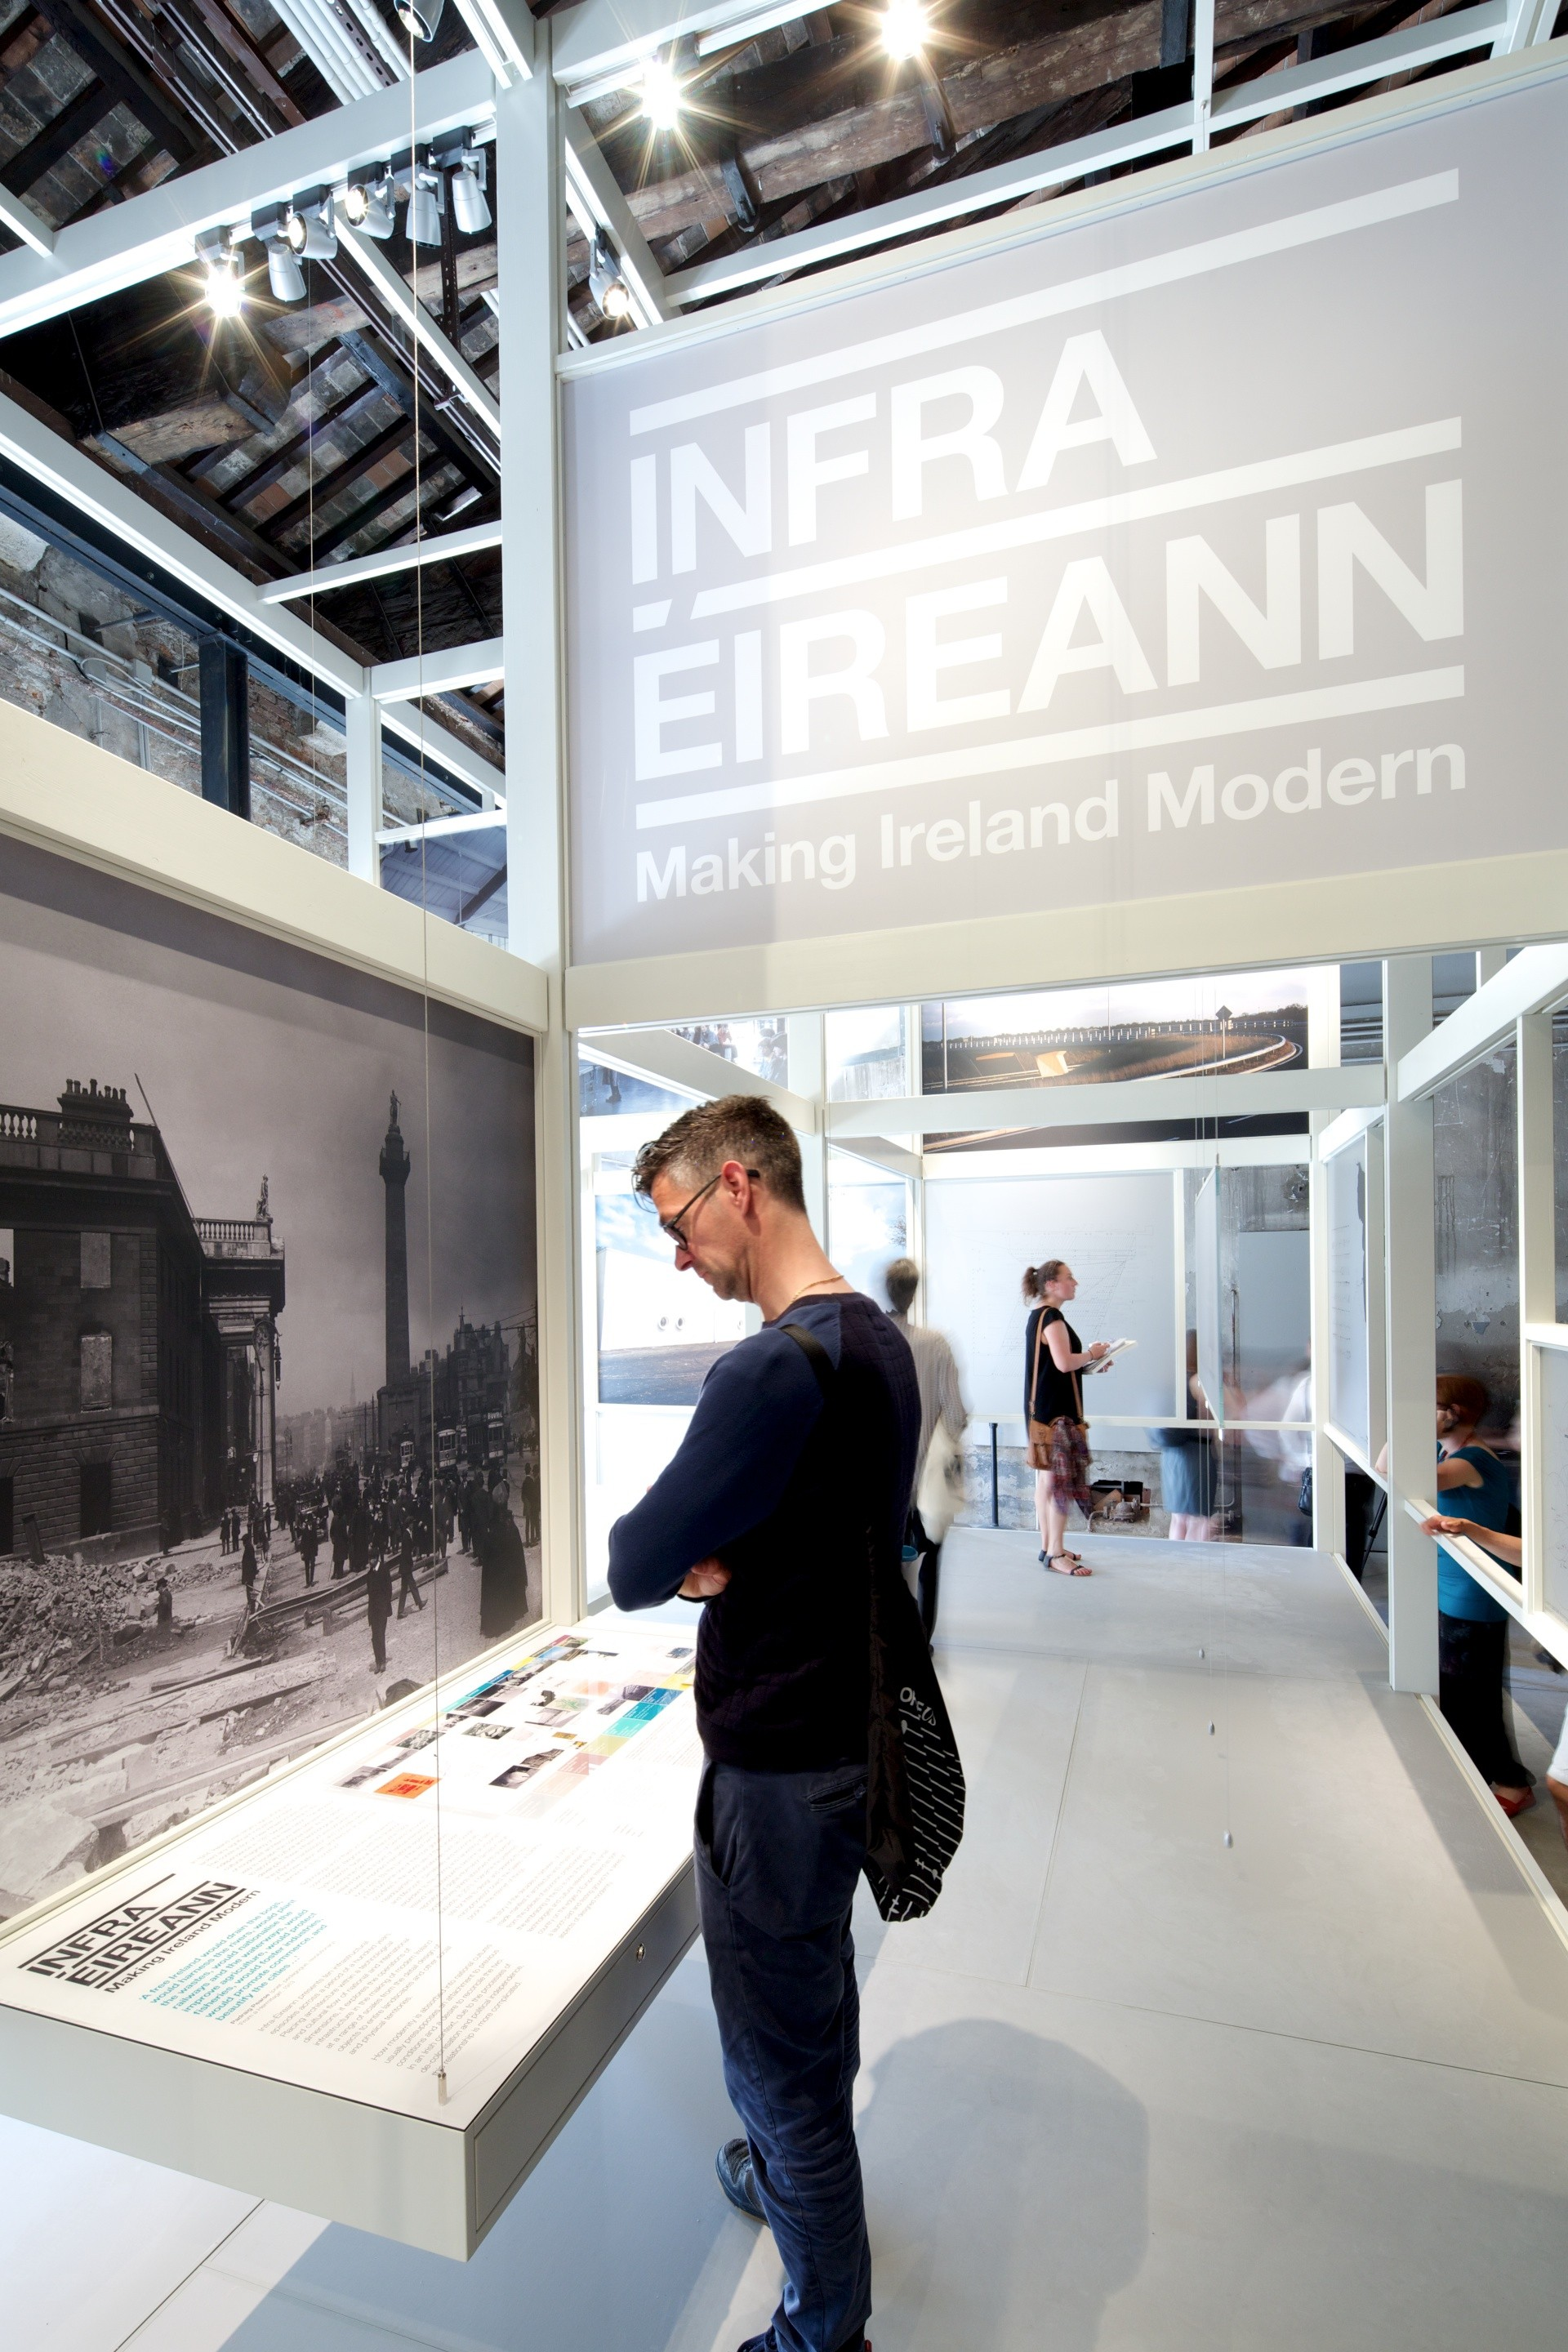 Infrastructure, Data and Progress: Ireland's Pavilion at the 2014 Venice Biennale